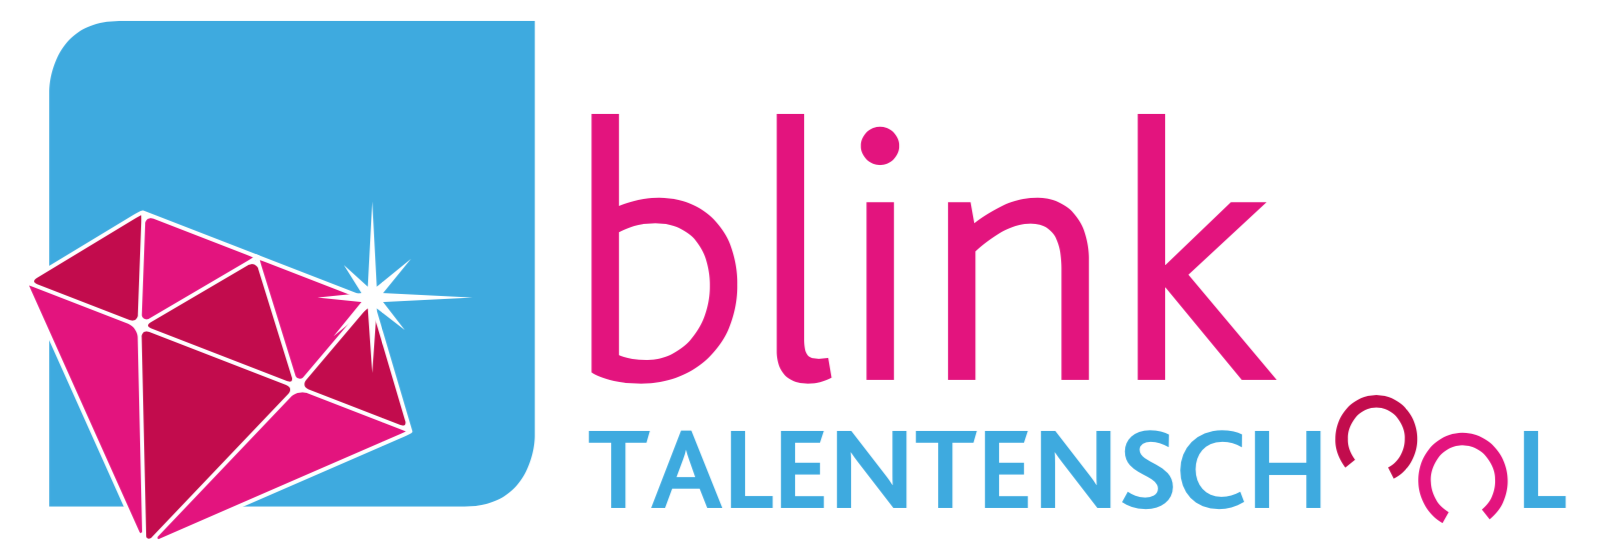 Talentenschool Blink